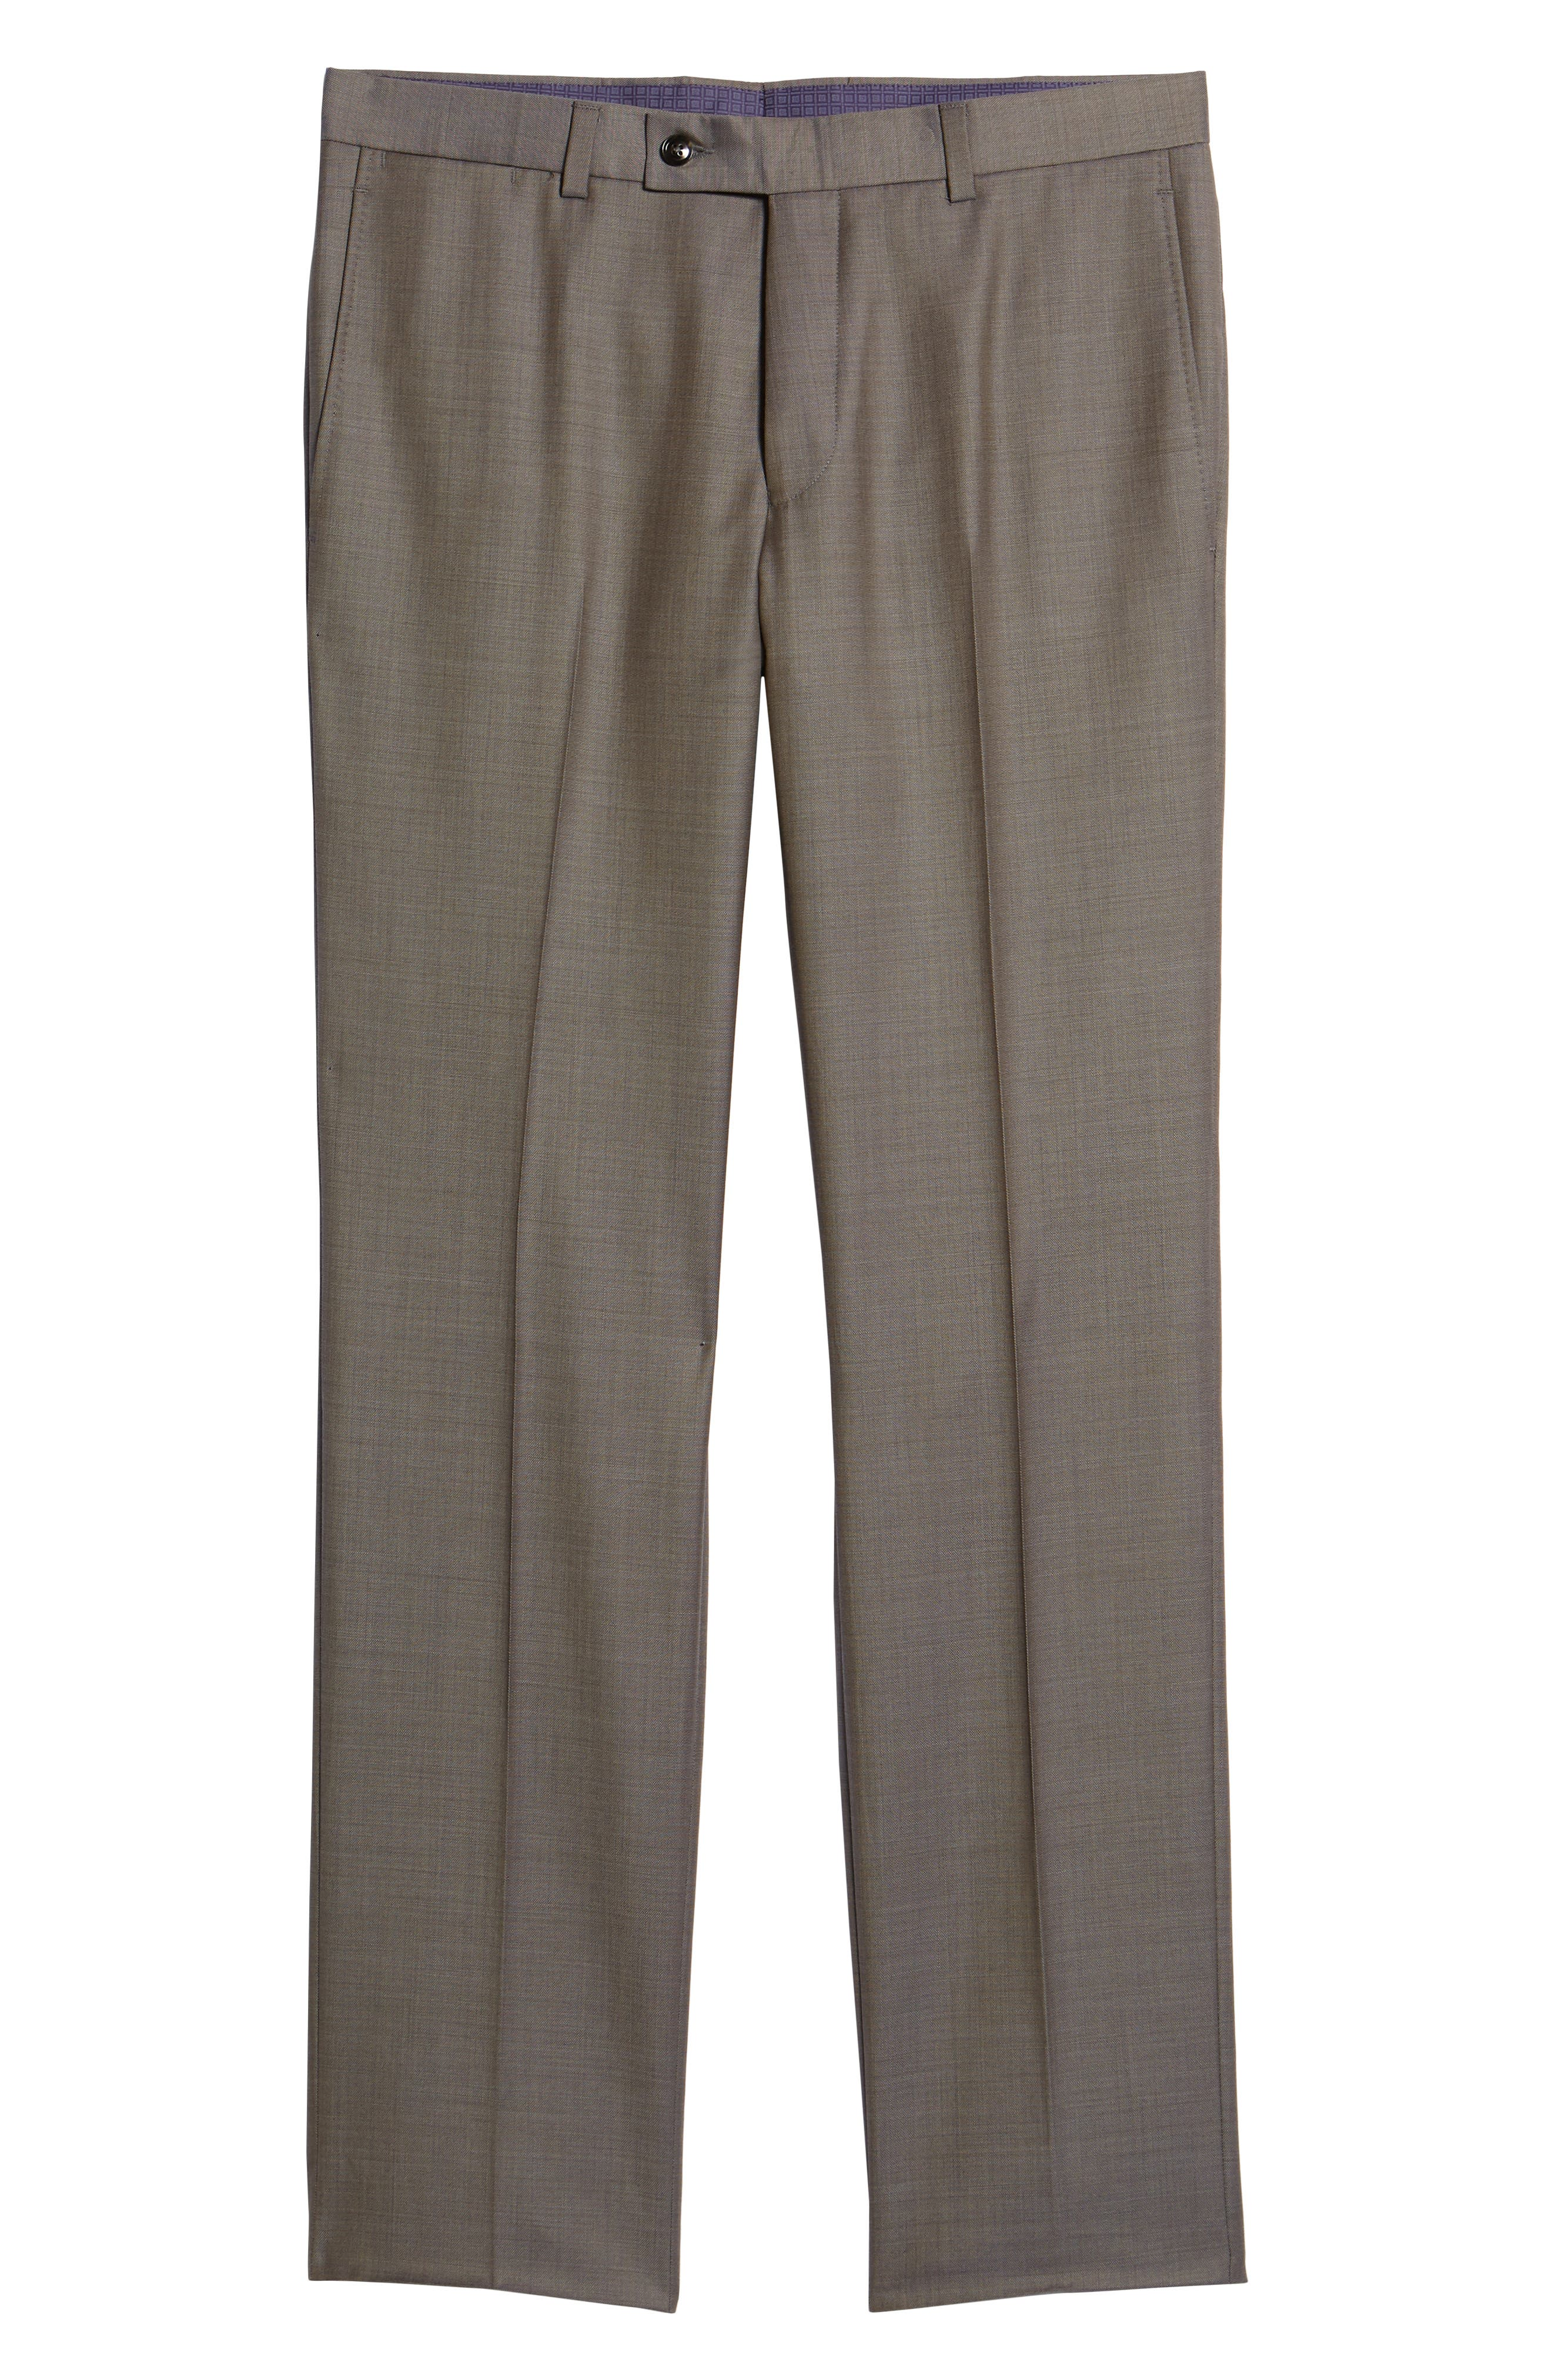 TED BAKER LONDON, Jefferson Flat Front Wool Trousers, Alternate thumbnail 6, color, MID GREY